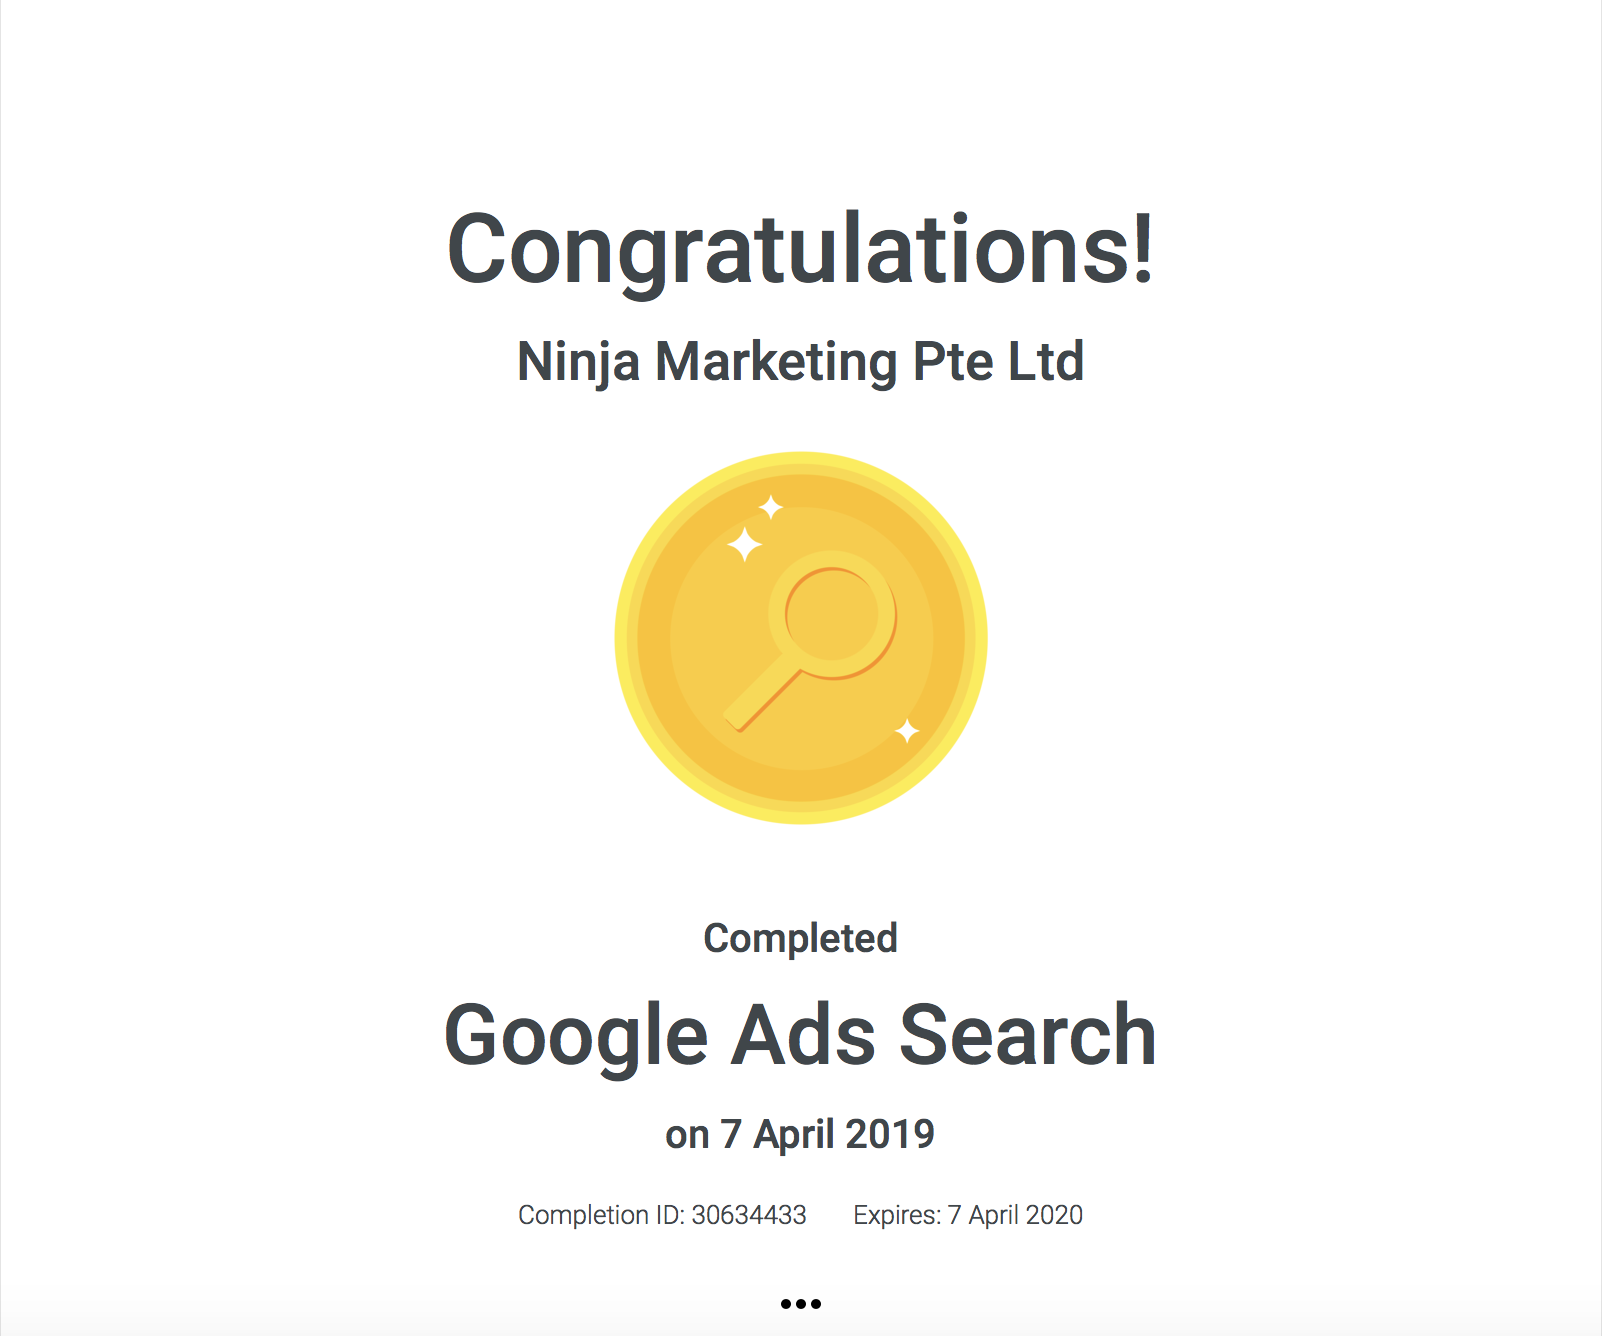 Ninja Marketing - Google Ads Search Achievement Award